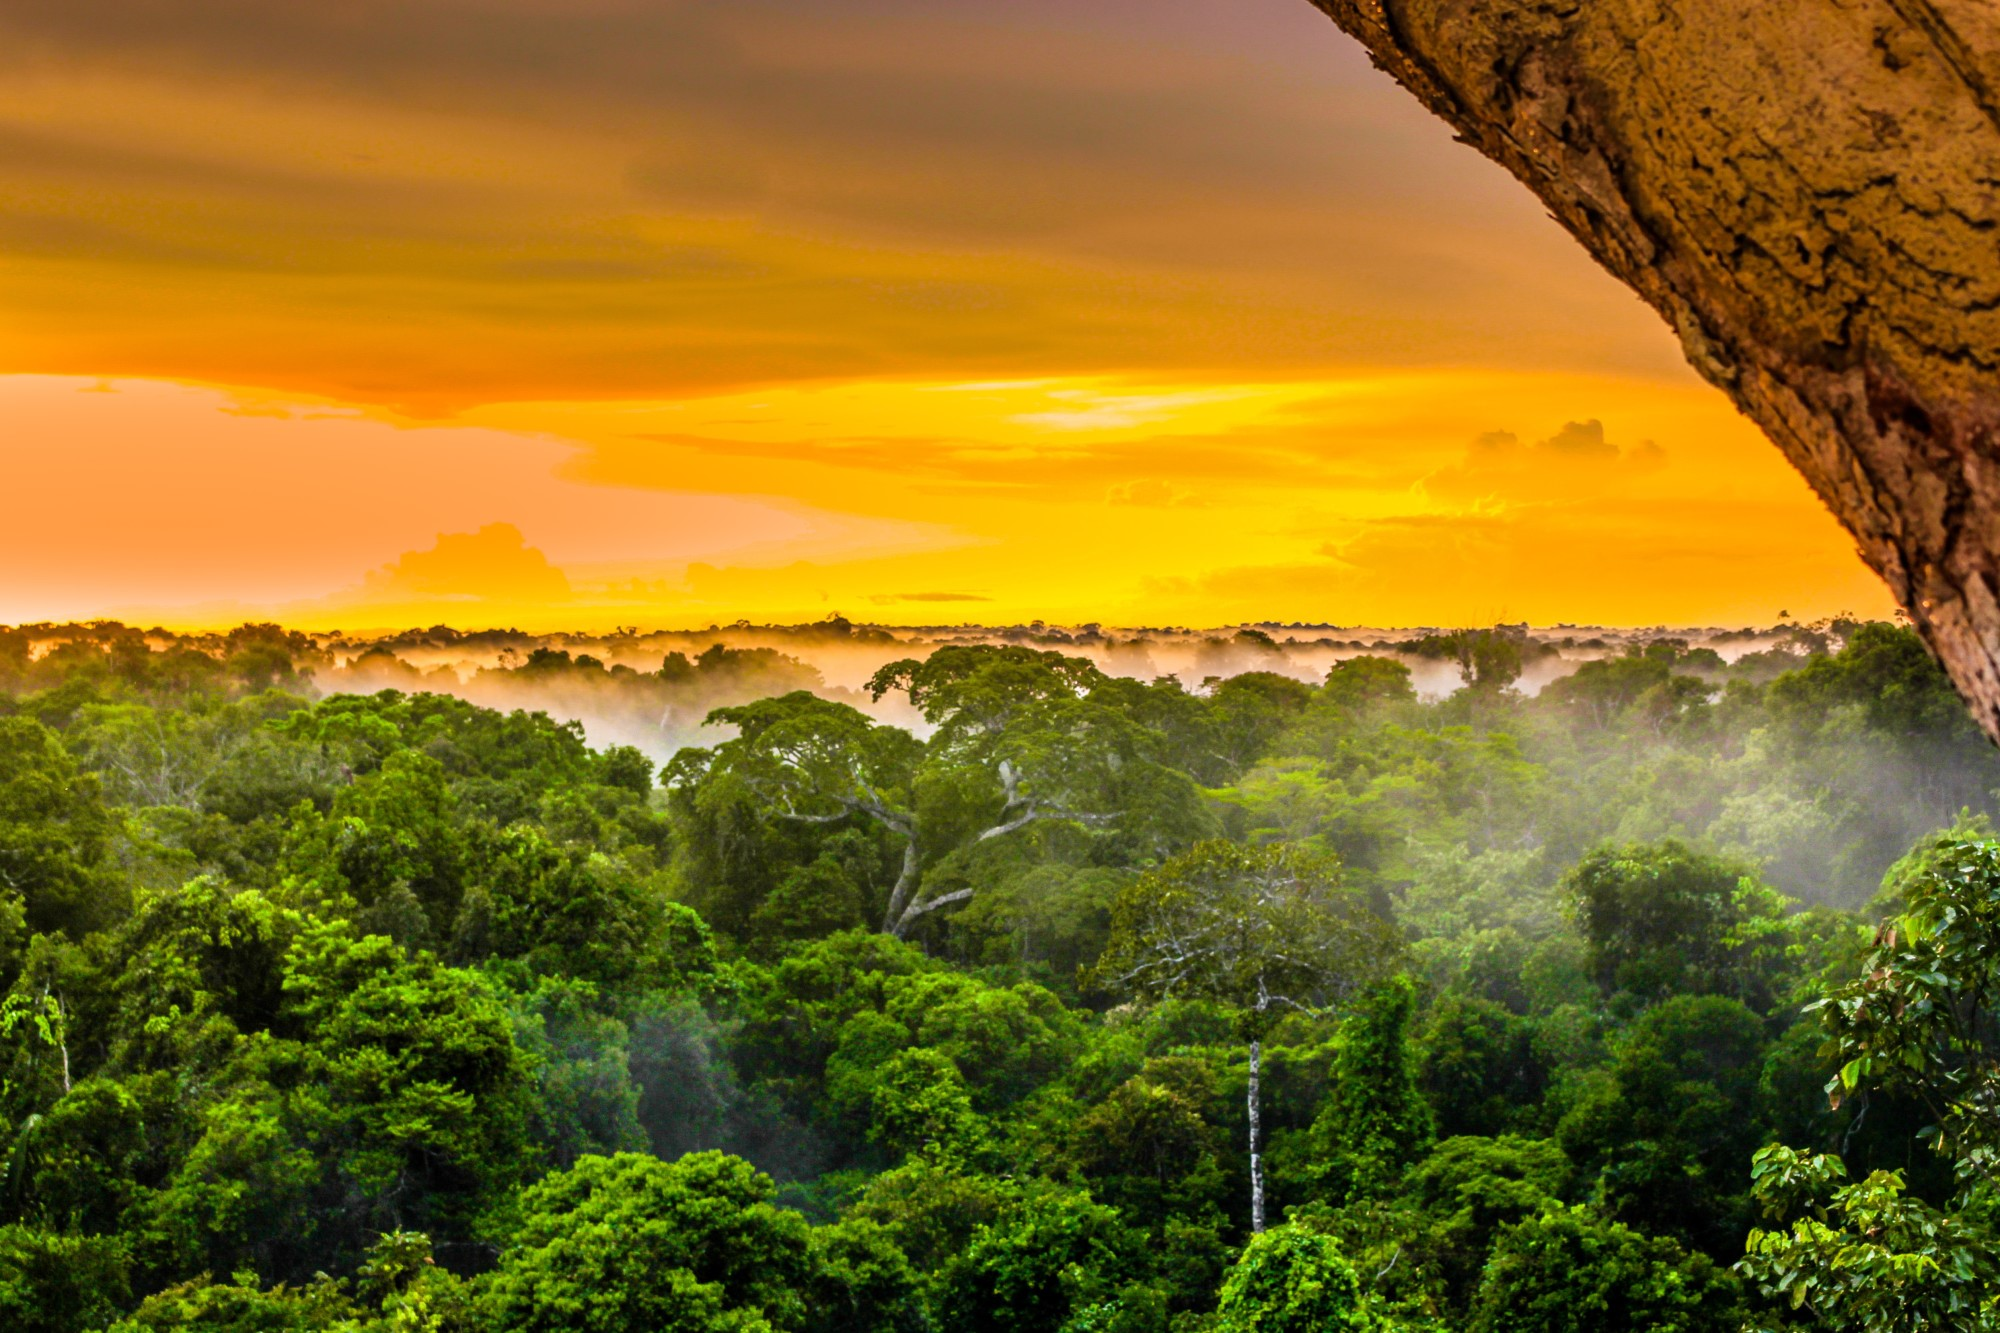 Exploring the Jungle: 11 Things To Know Goin on a Trip to the Amazon